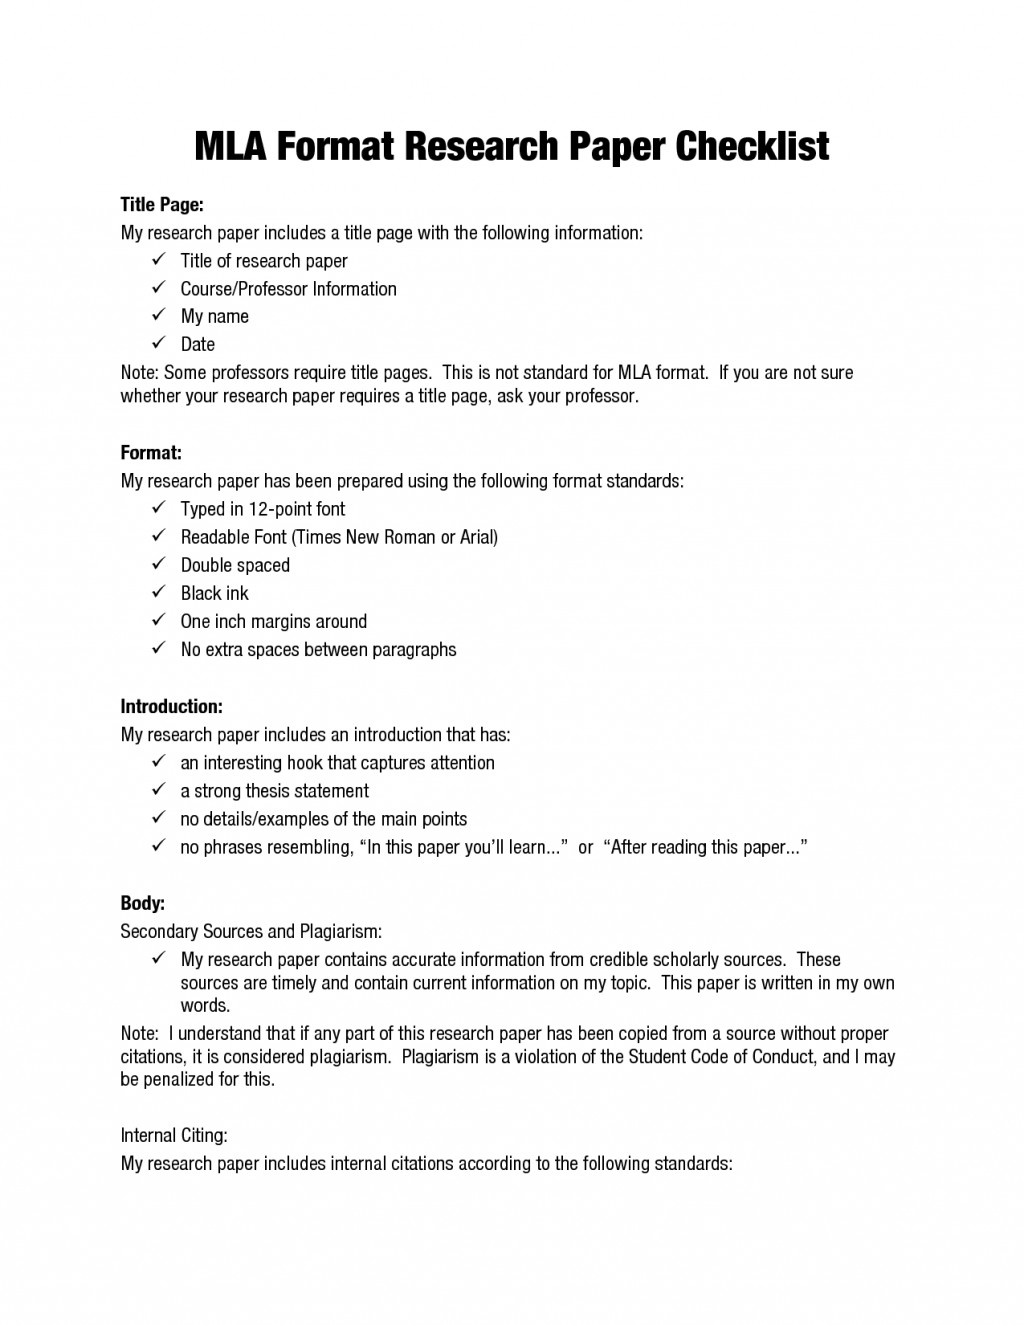 007 How To Make An Outline For Research Paper Mla Striking A Using Style Large